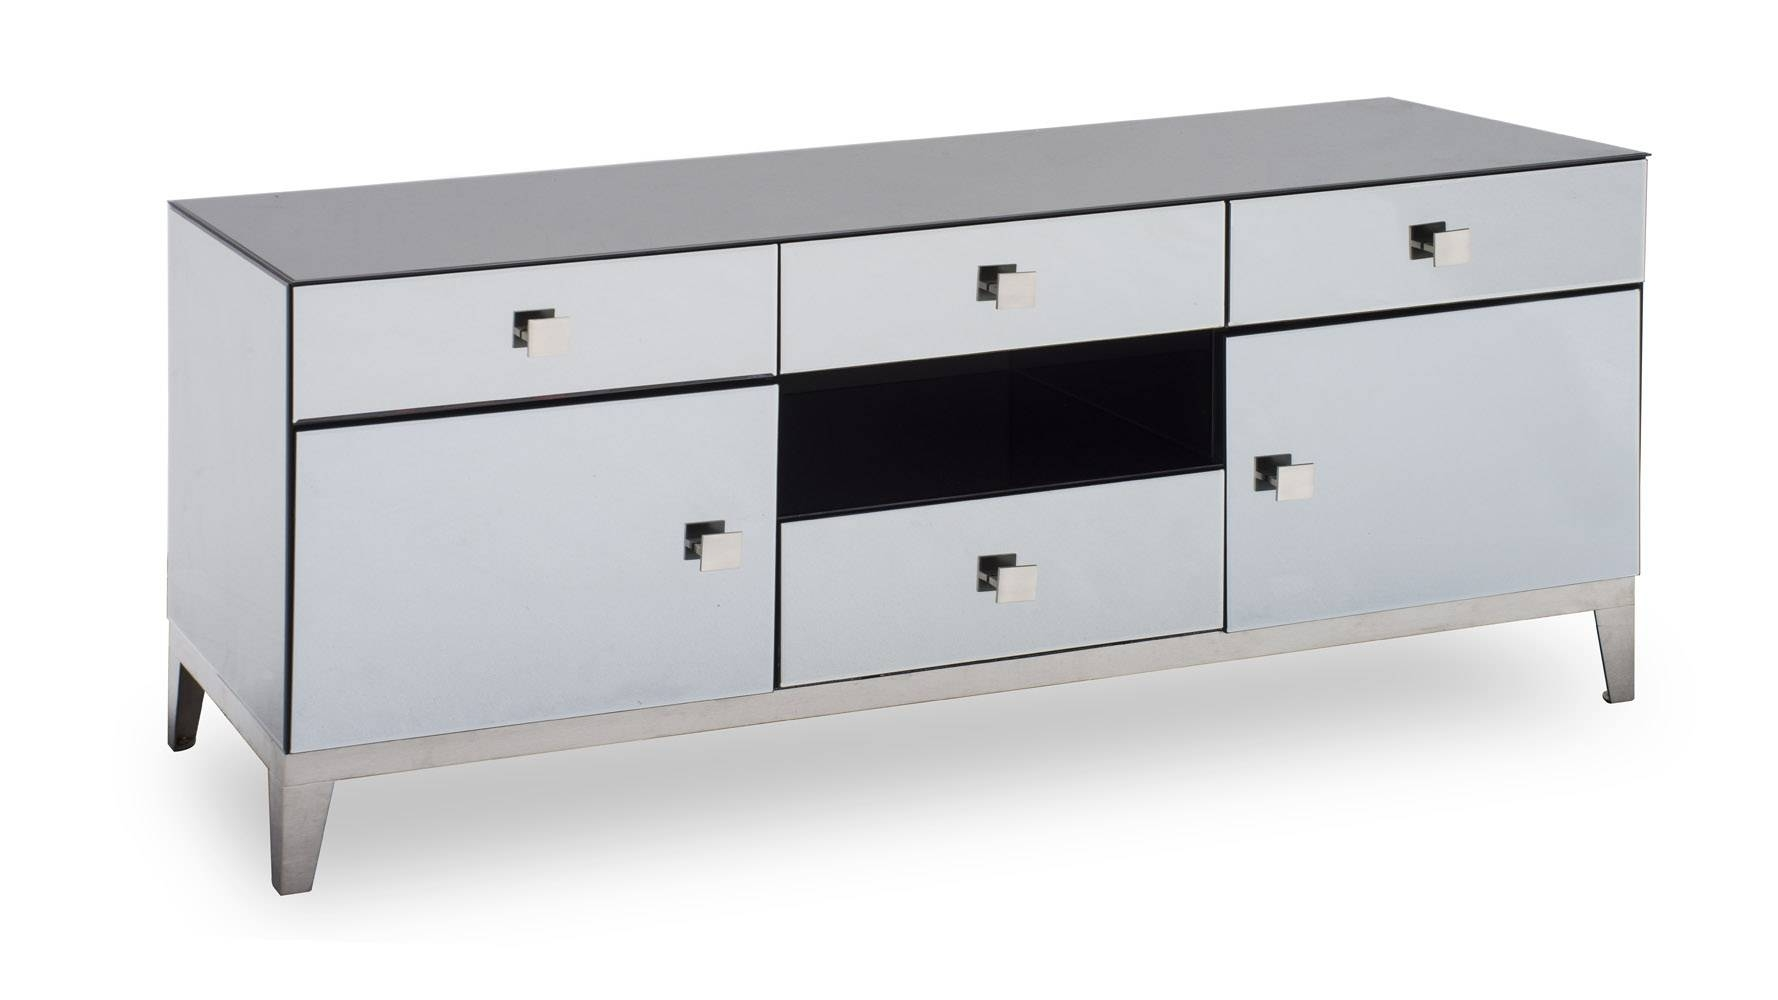 Modern Grey Mirrored Glass Berlin Tv Stand | Zuri Furniture intended for Mirrored Tv Cabinets (Image 7 of 15)